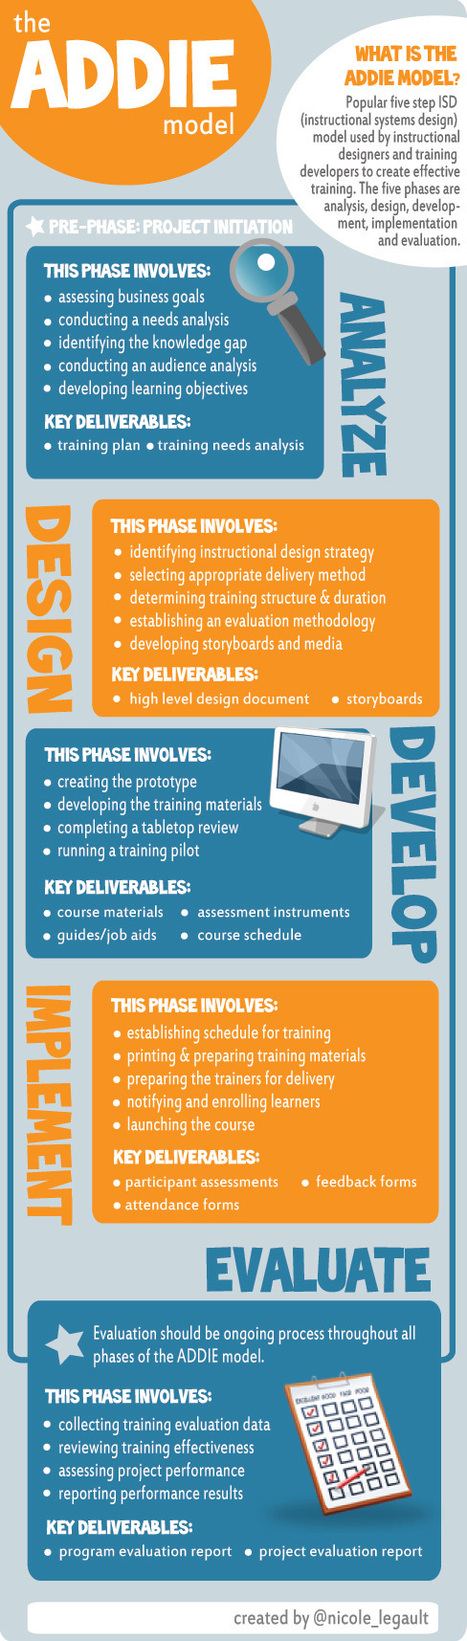 ADDIE Instructional Design Model | Presented by Intulogy | E-Learning and Online Teaching | Scoop.it